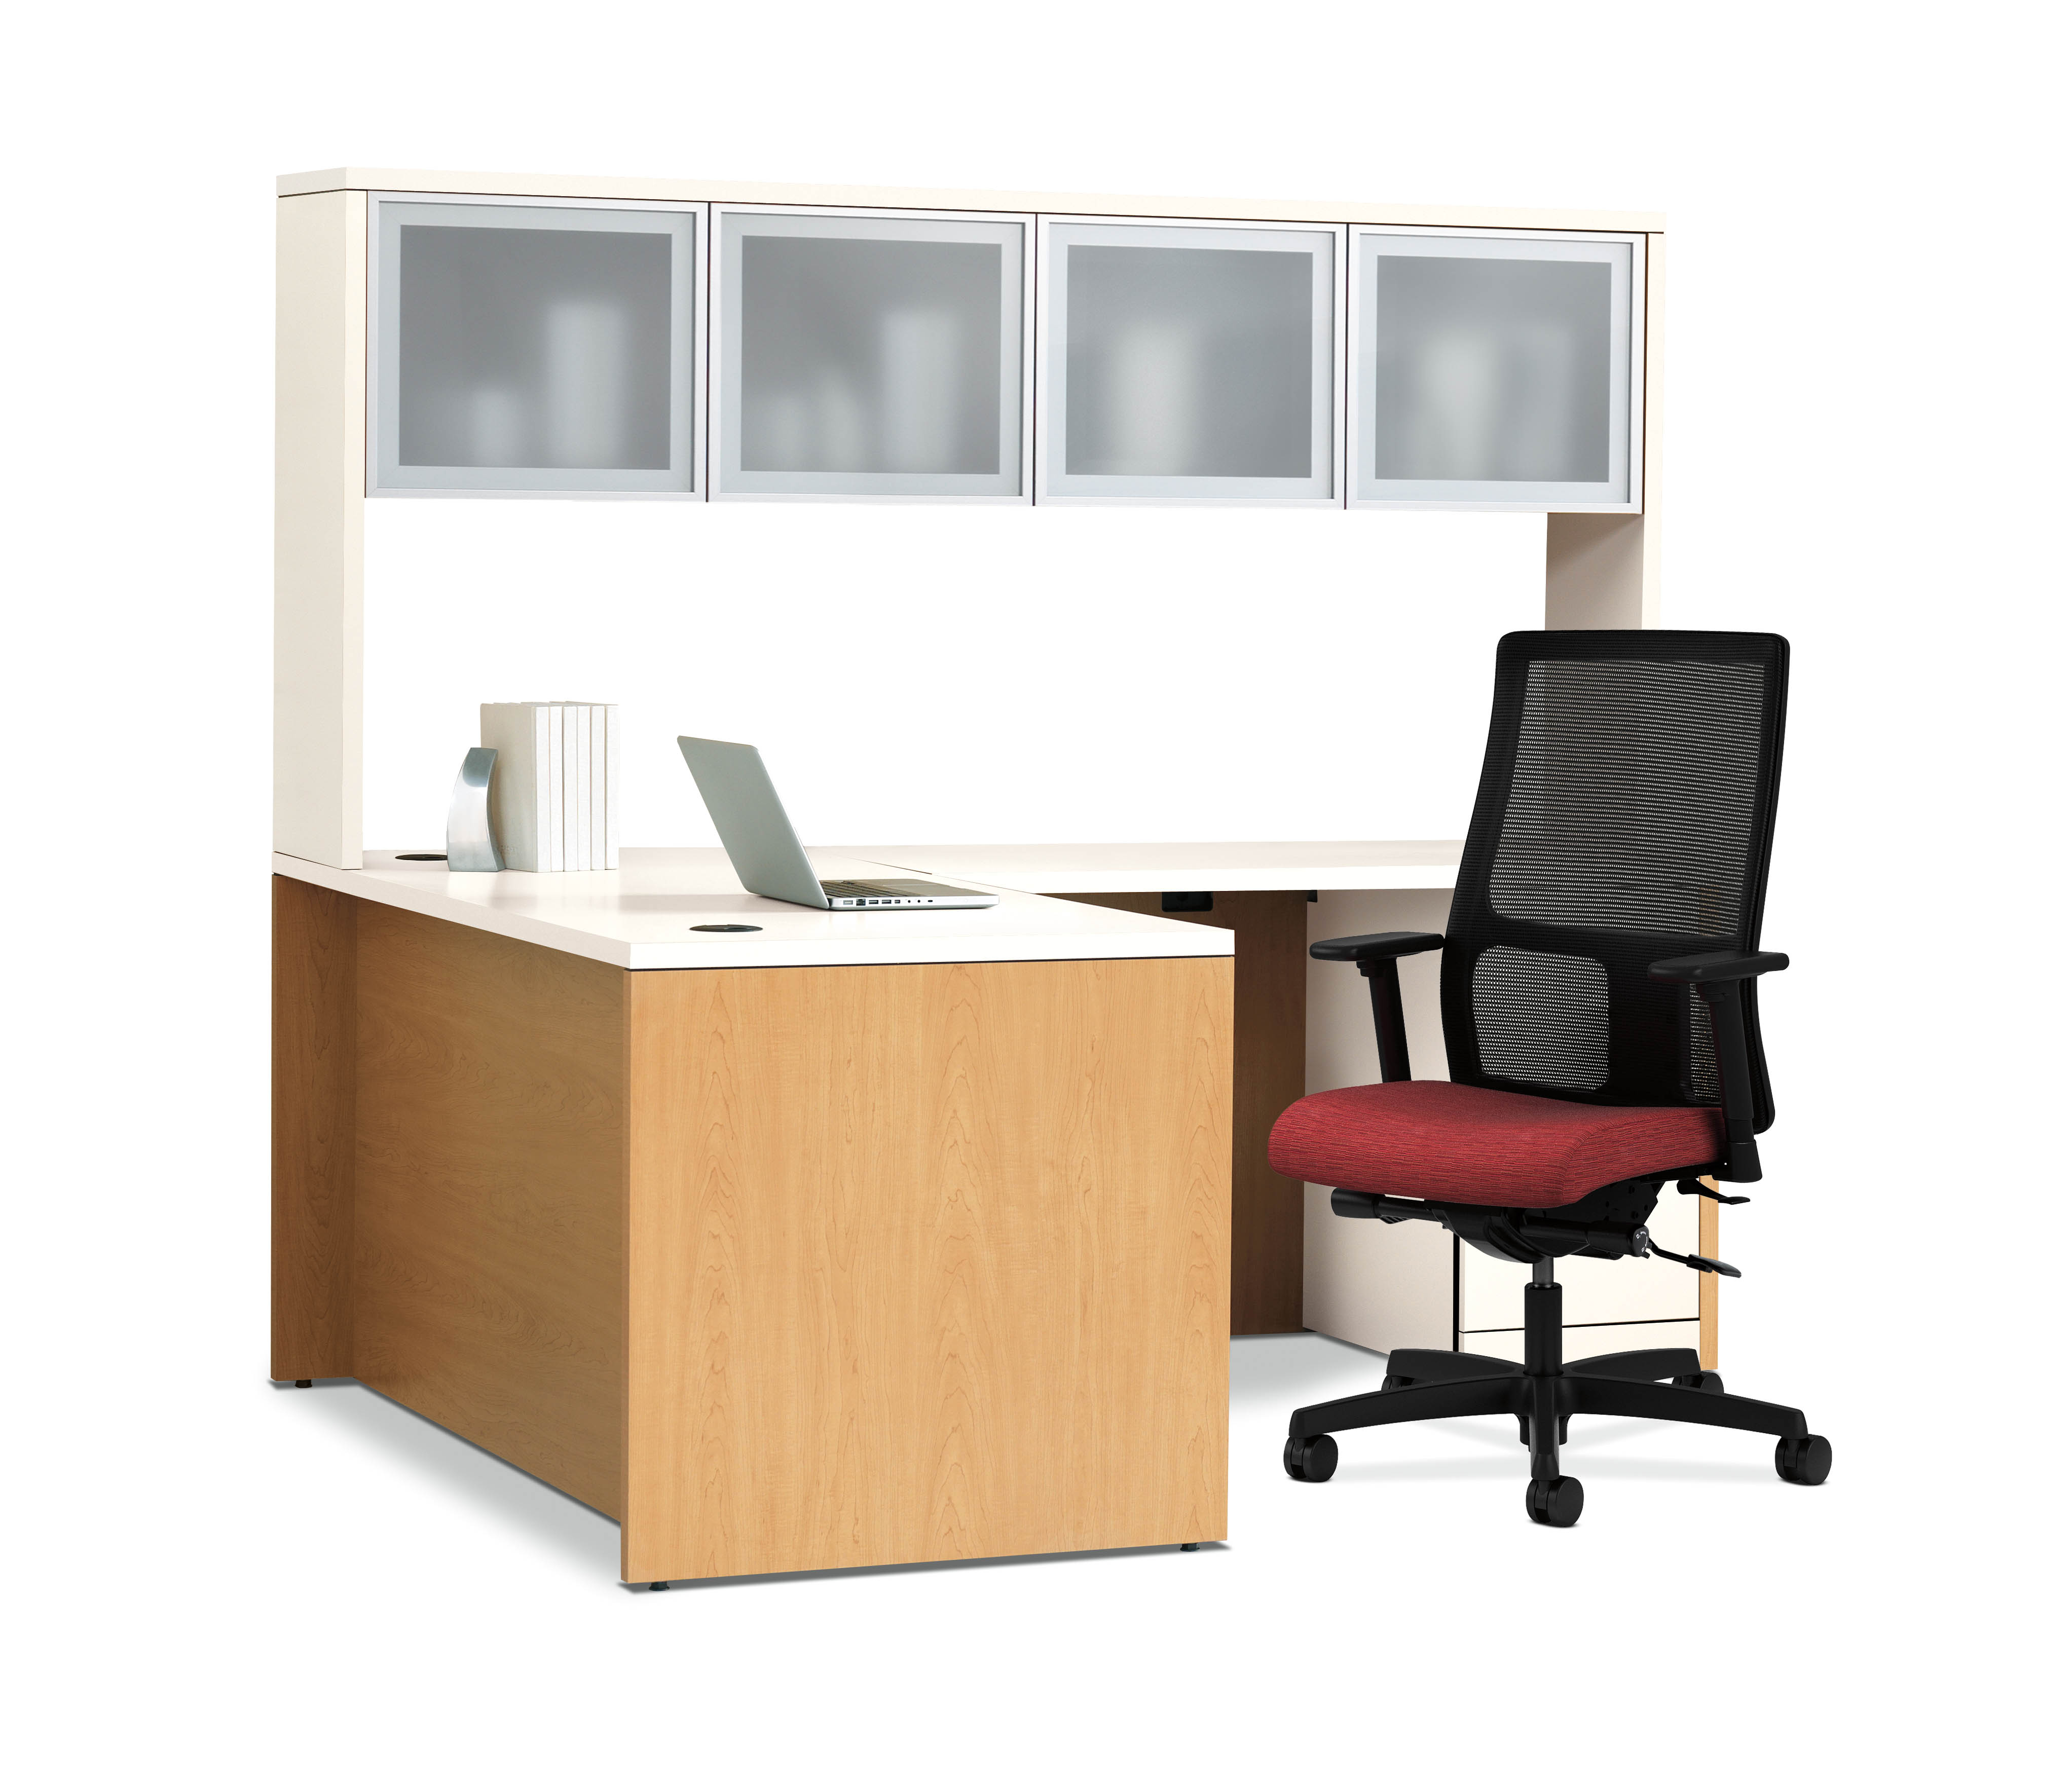 new office furniture thrifty office furniture